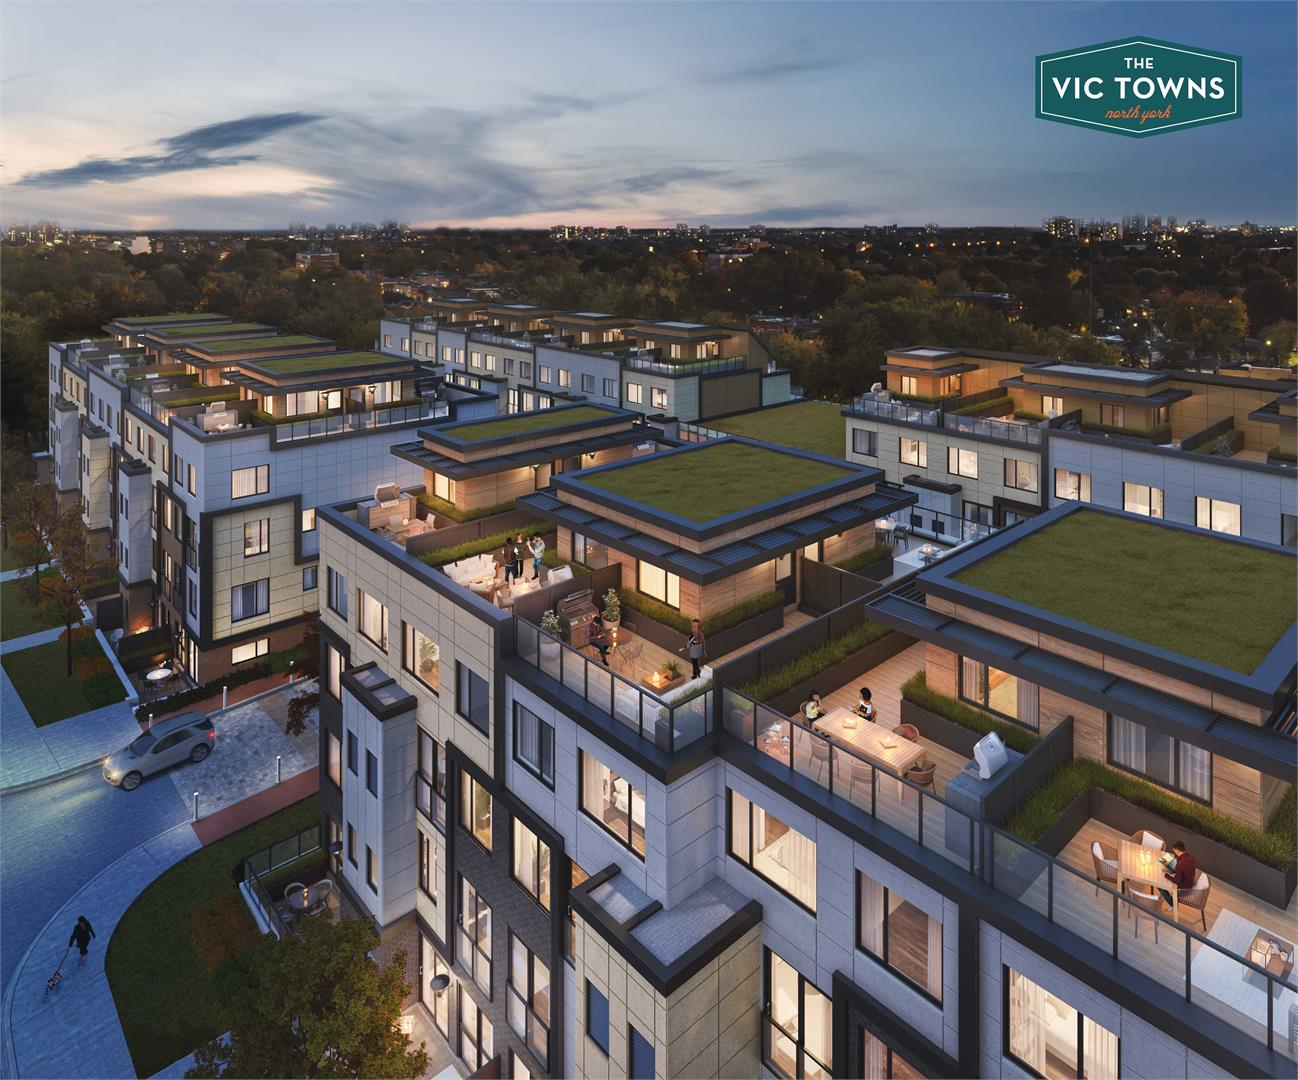 Exterior photo of The Vic Towns